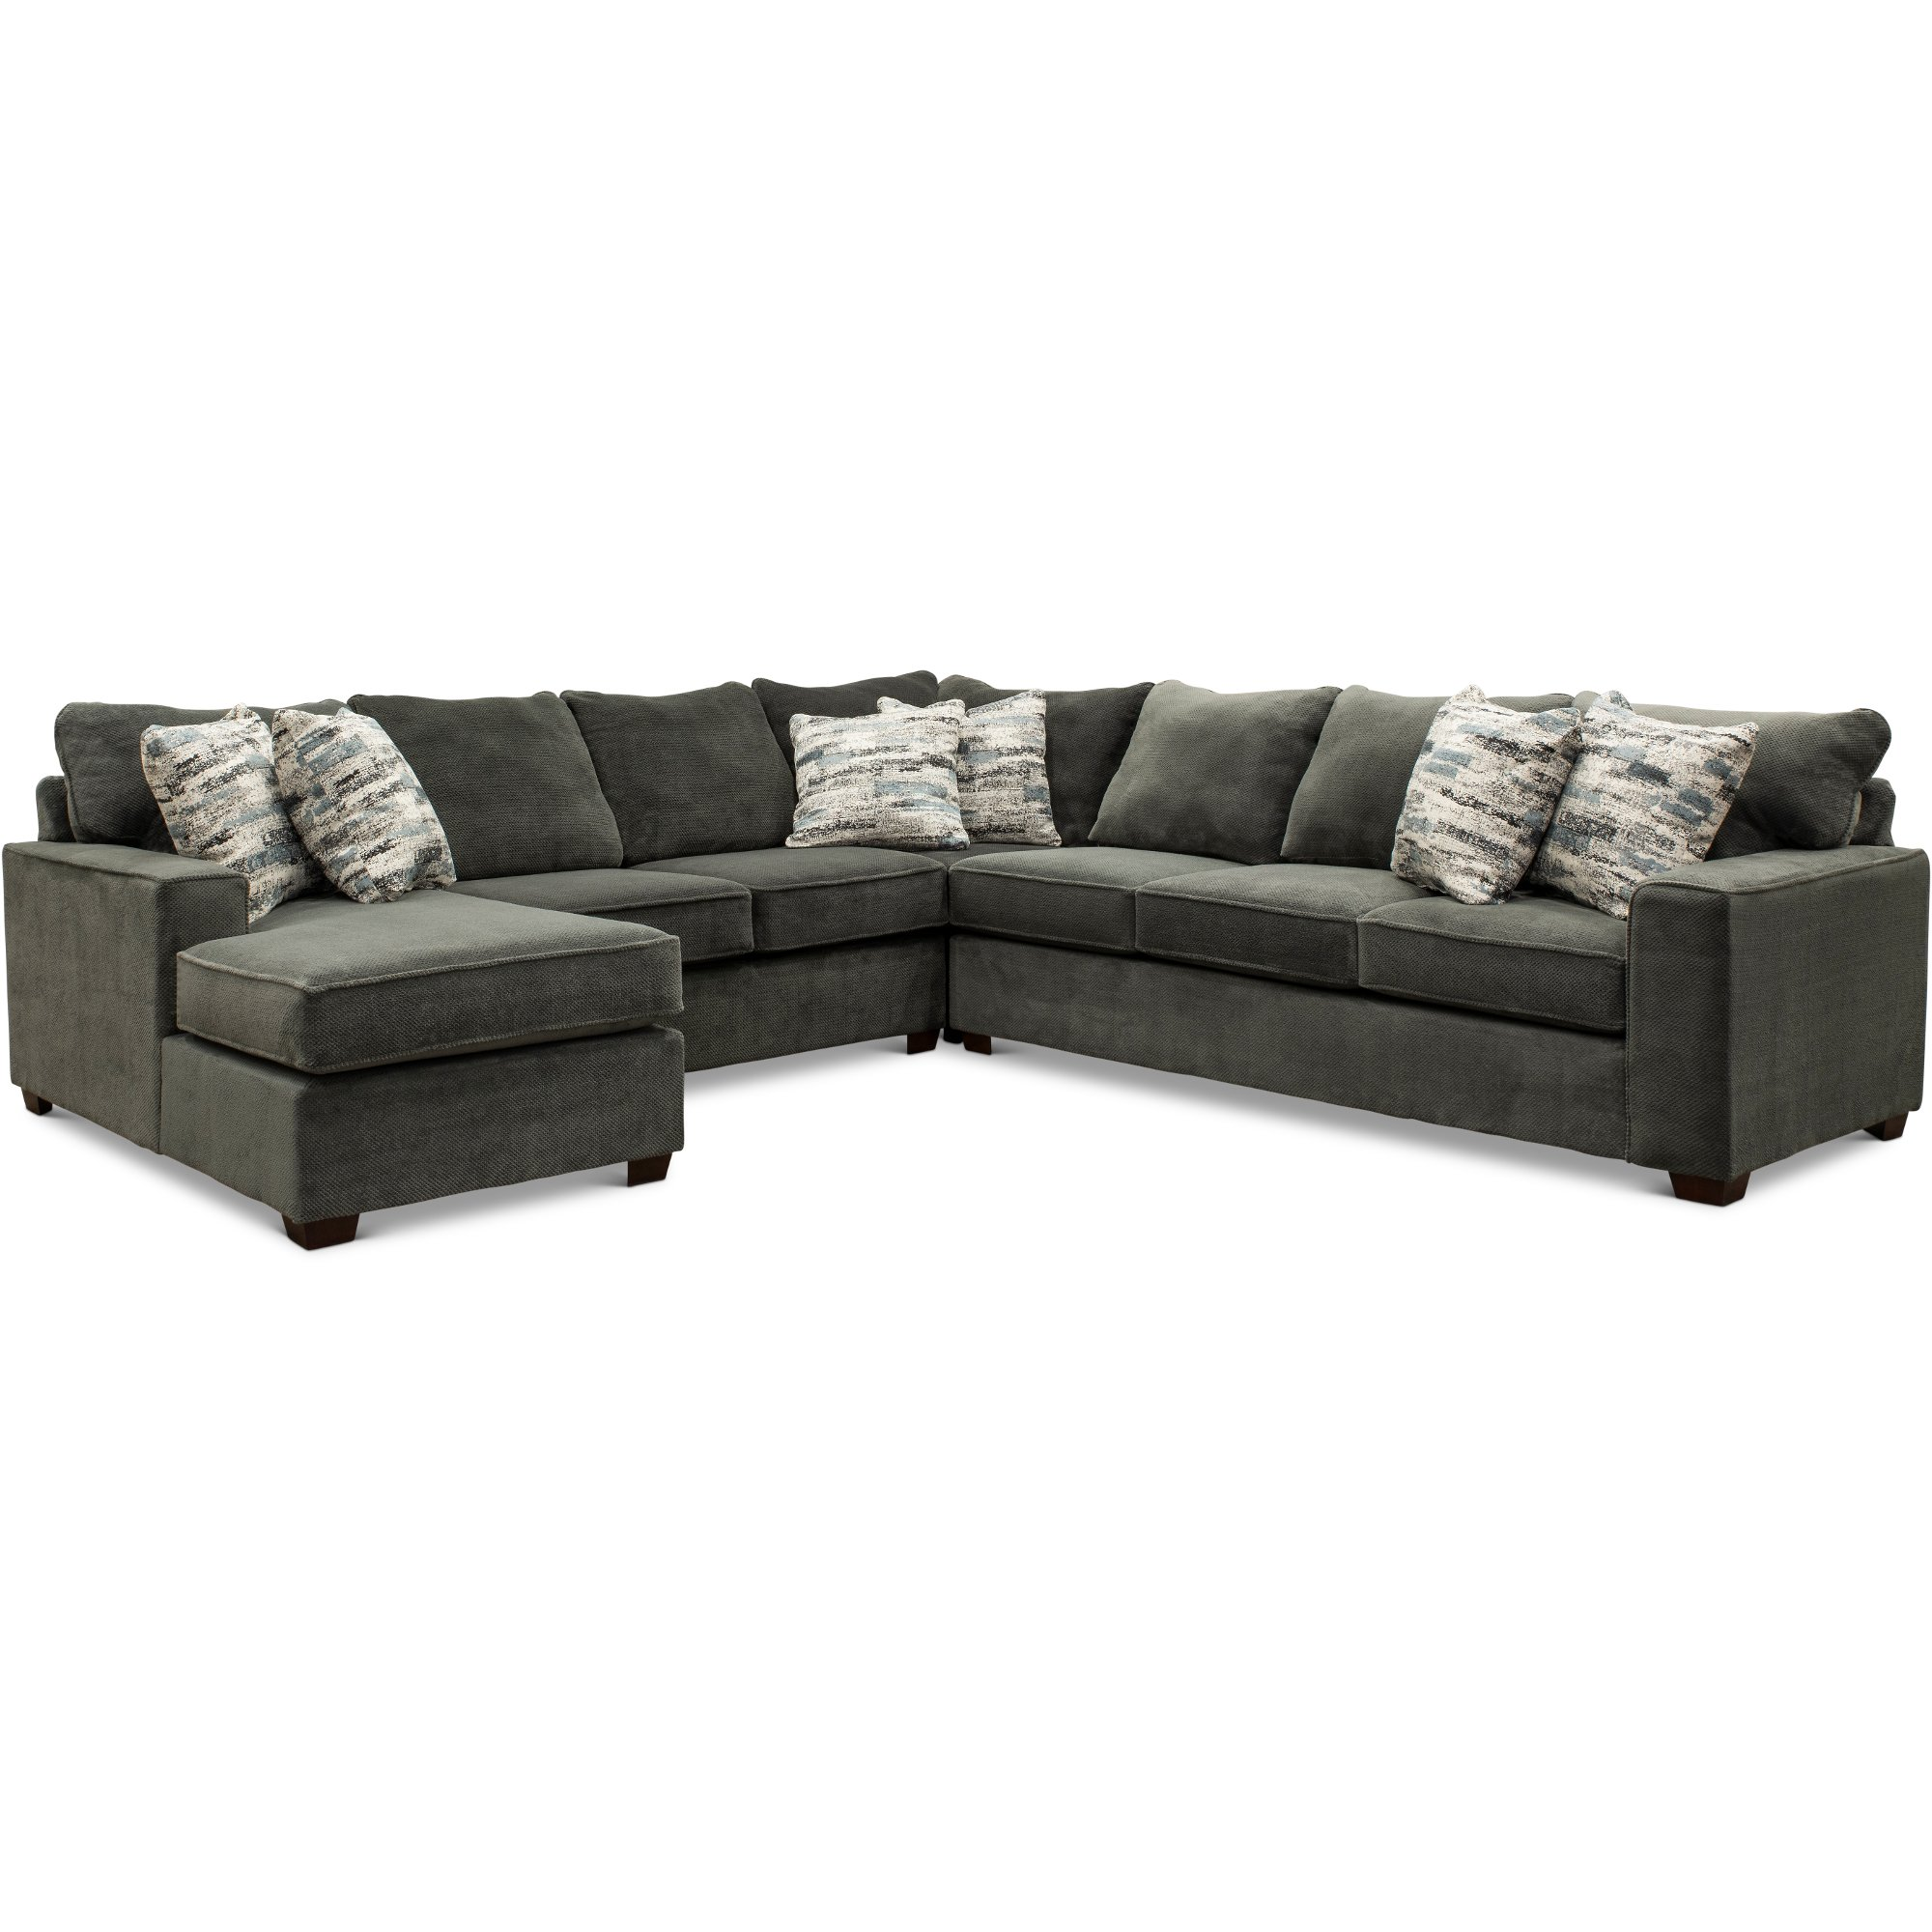 Dark Gray 4 Piece Sectional Sofa with RAF Sofa - Autumn